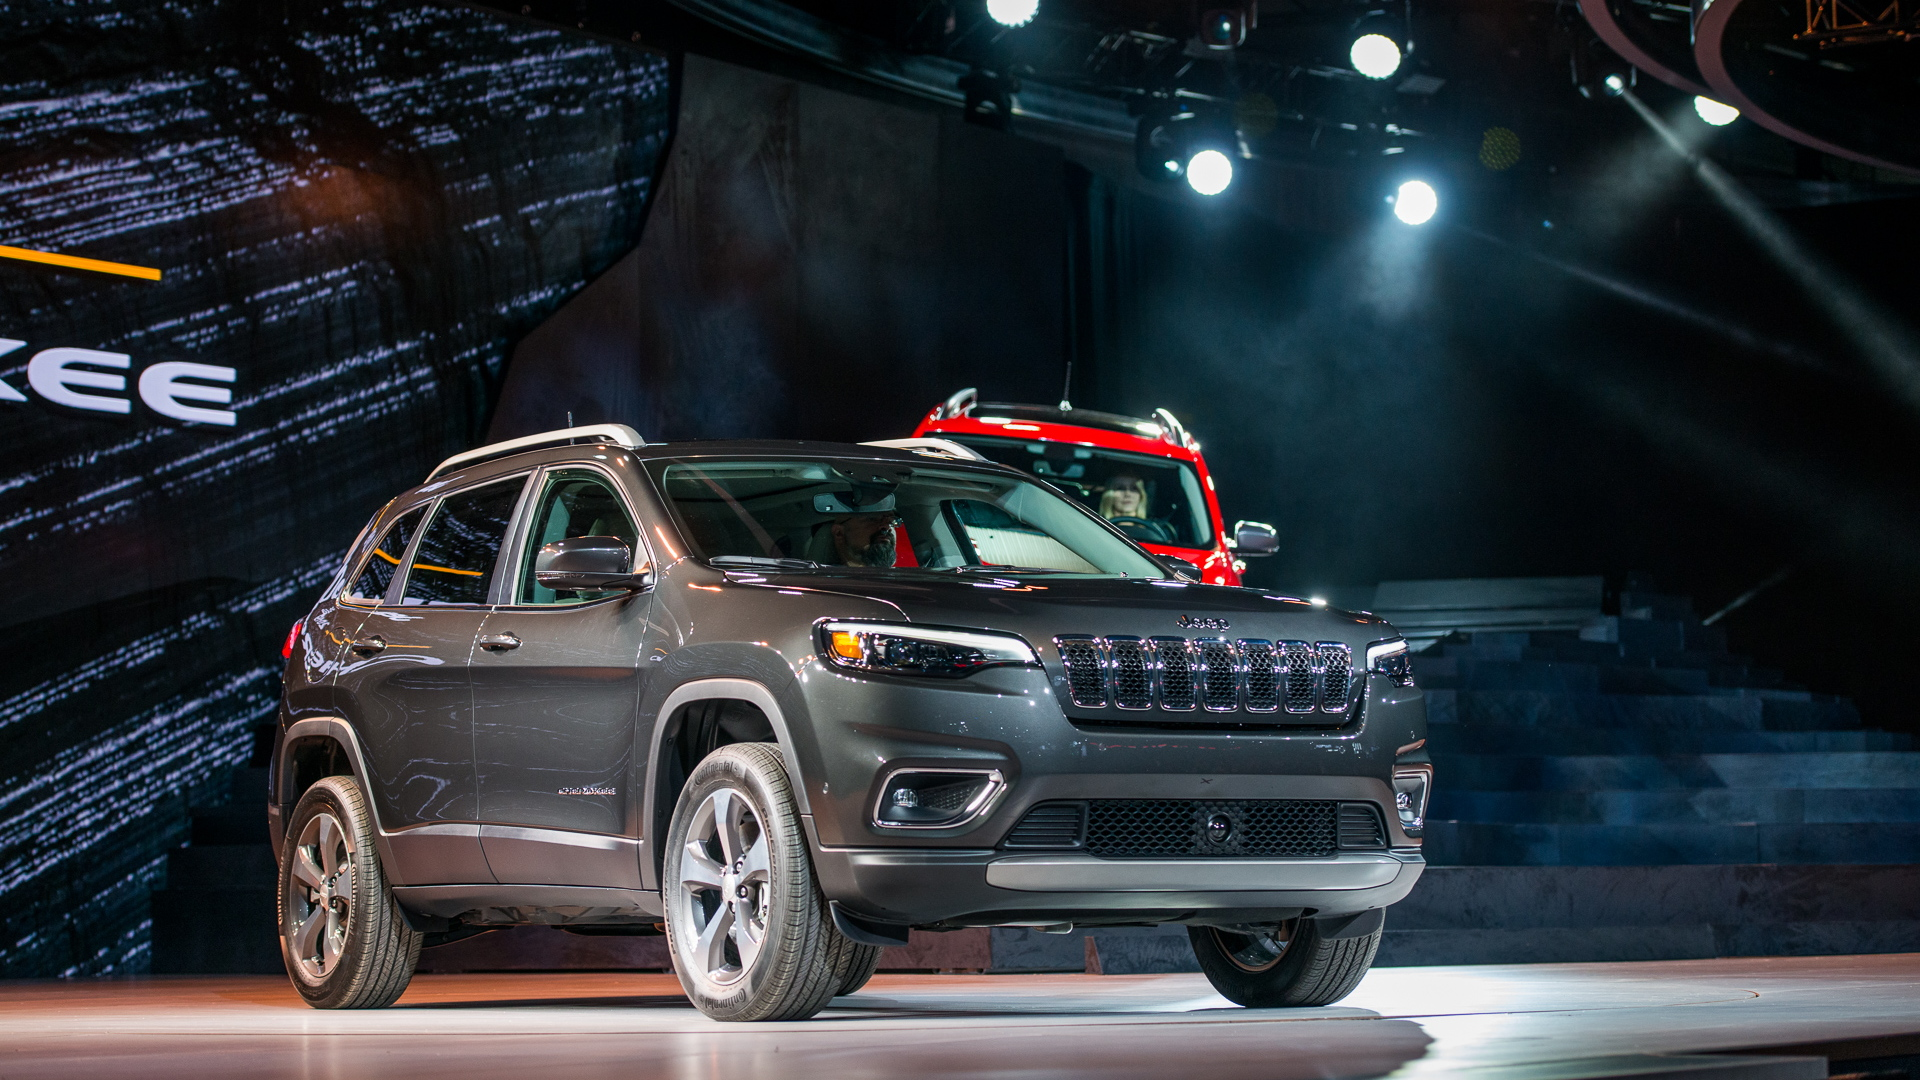 2019 Jeep Cherokee: Prettier And Turbocharged >> 2019 Jeep Cherokee Makeover Reveals Prettier Face Turbocharged Power